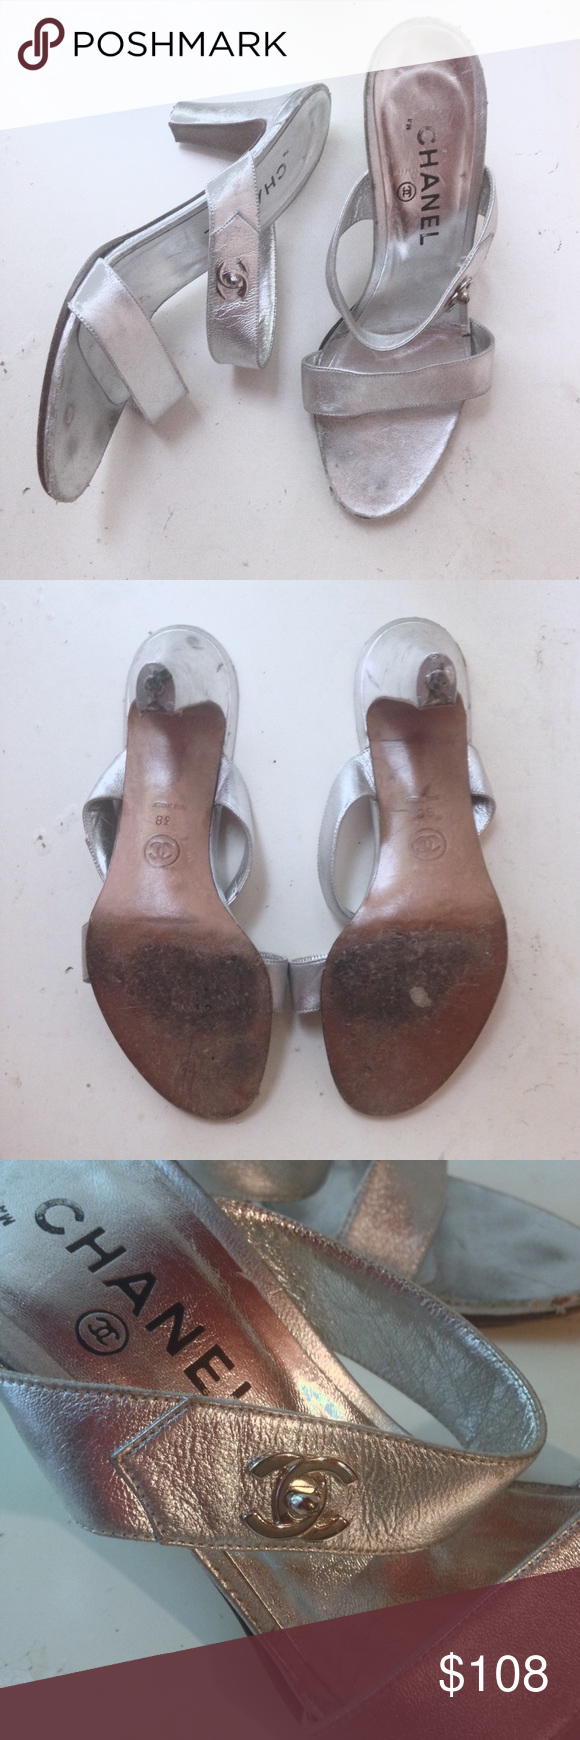 """CHANEL Vintage Silver Lambskin Slide Sandals 38 8 Price firm. Beautiful lambskin silver leather heeled sandals. There are a some spots around the edges of the footbed but it's not noticeable at all when worn. Heel measures 3"""". Labeled 38 fits more like a USA 7. Both shoes need heel cap replacements. (See photos.) CHANEL Shoes Heels"""